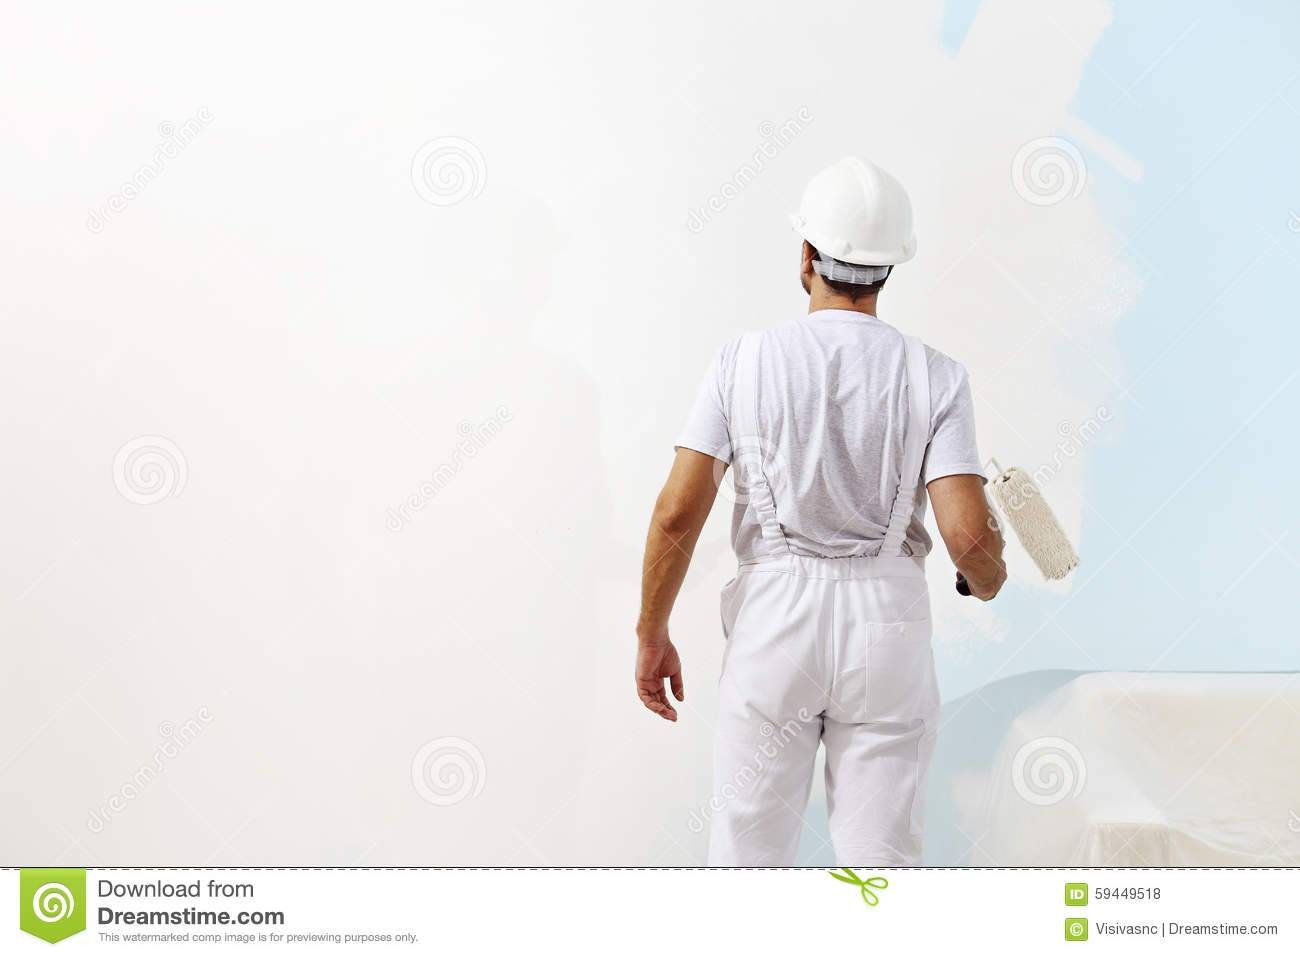 Painter Painting Wall Stock Photo - Image: 46381229